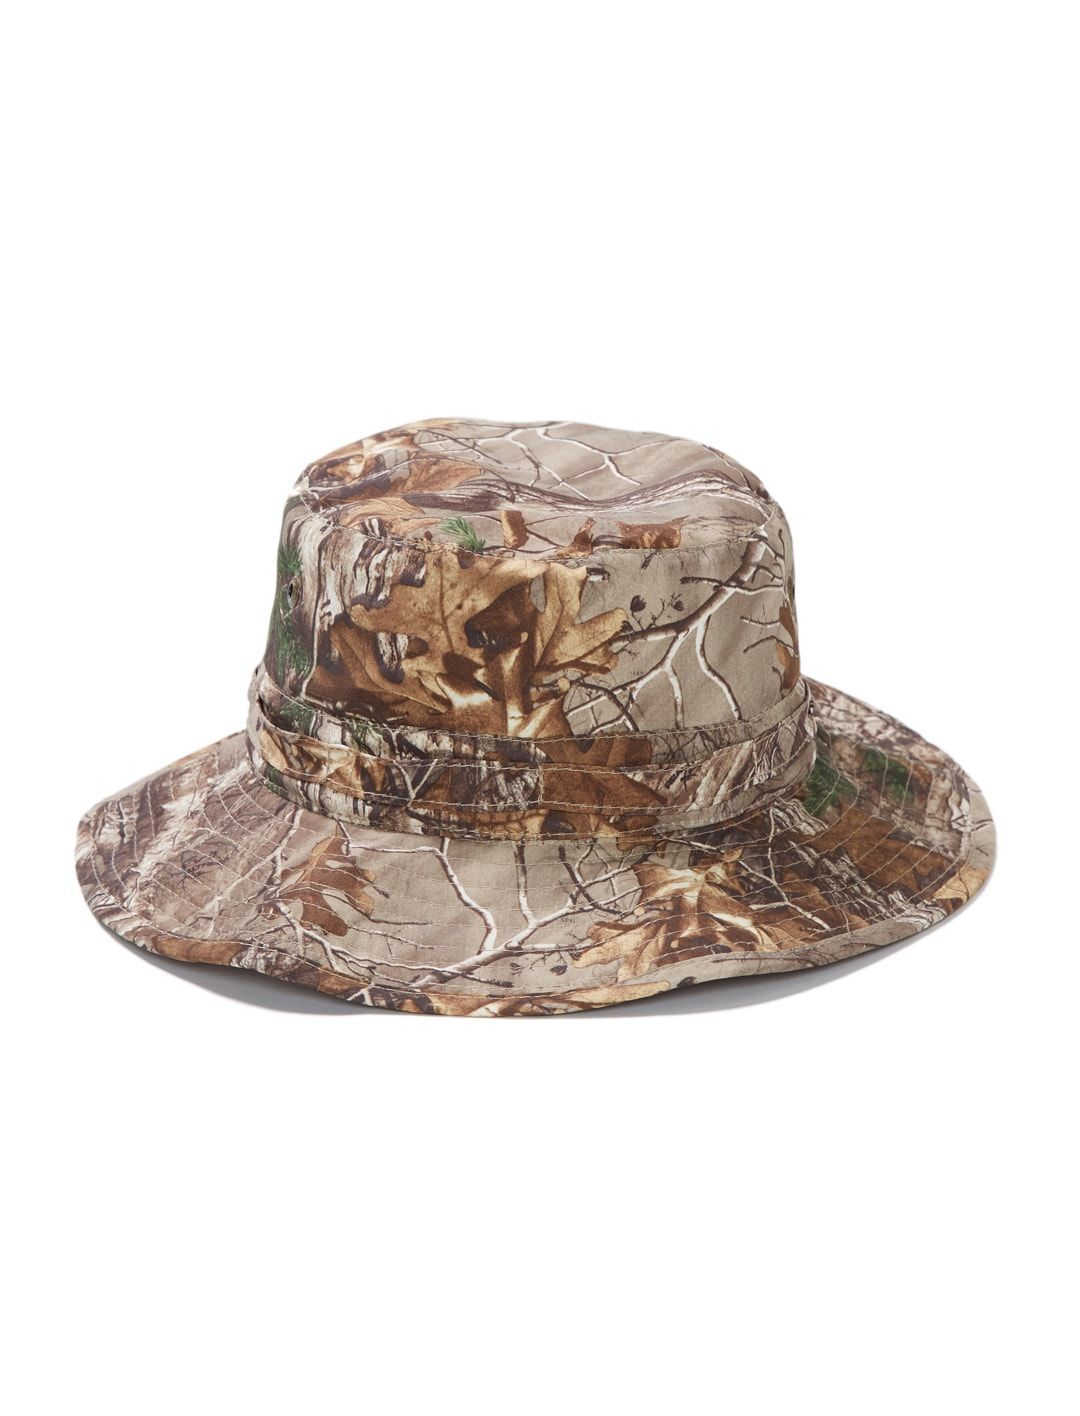 Product description. Bucket hat with grosgrain ribbon band and Stetson  badge detail. Stetson Mens Fairway ... 544cadac6a1